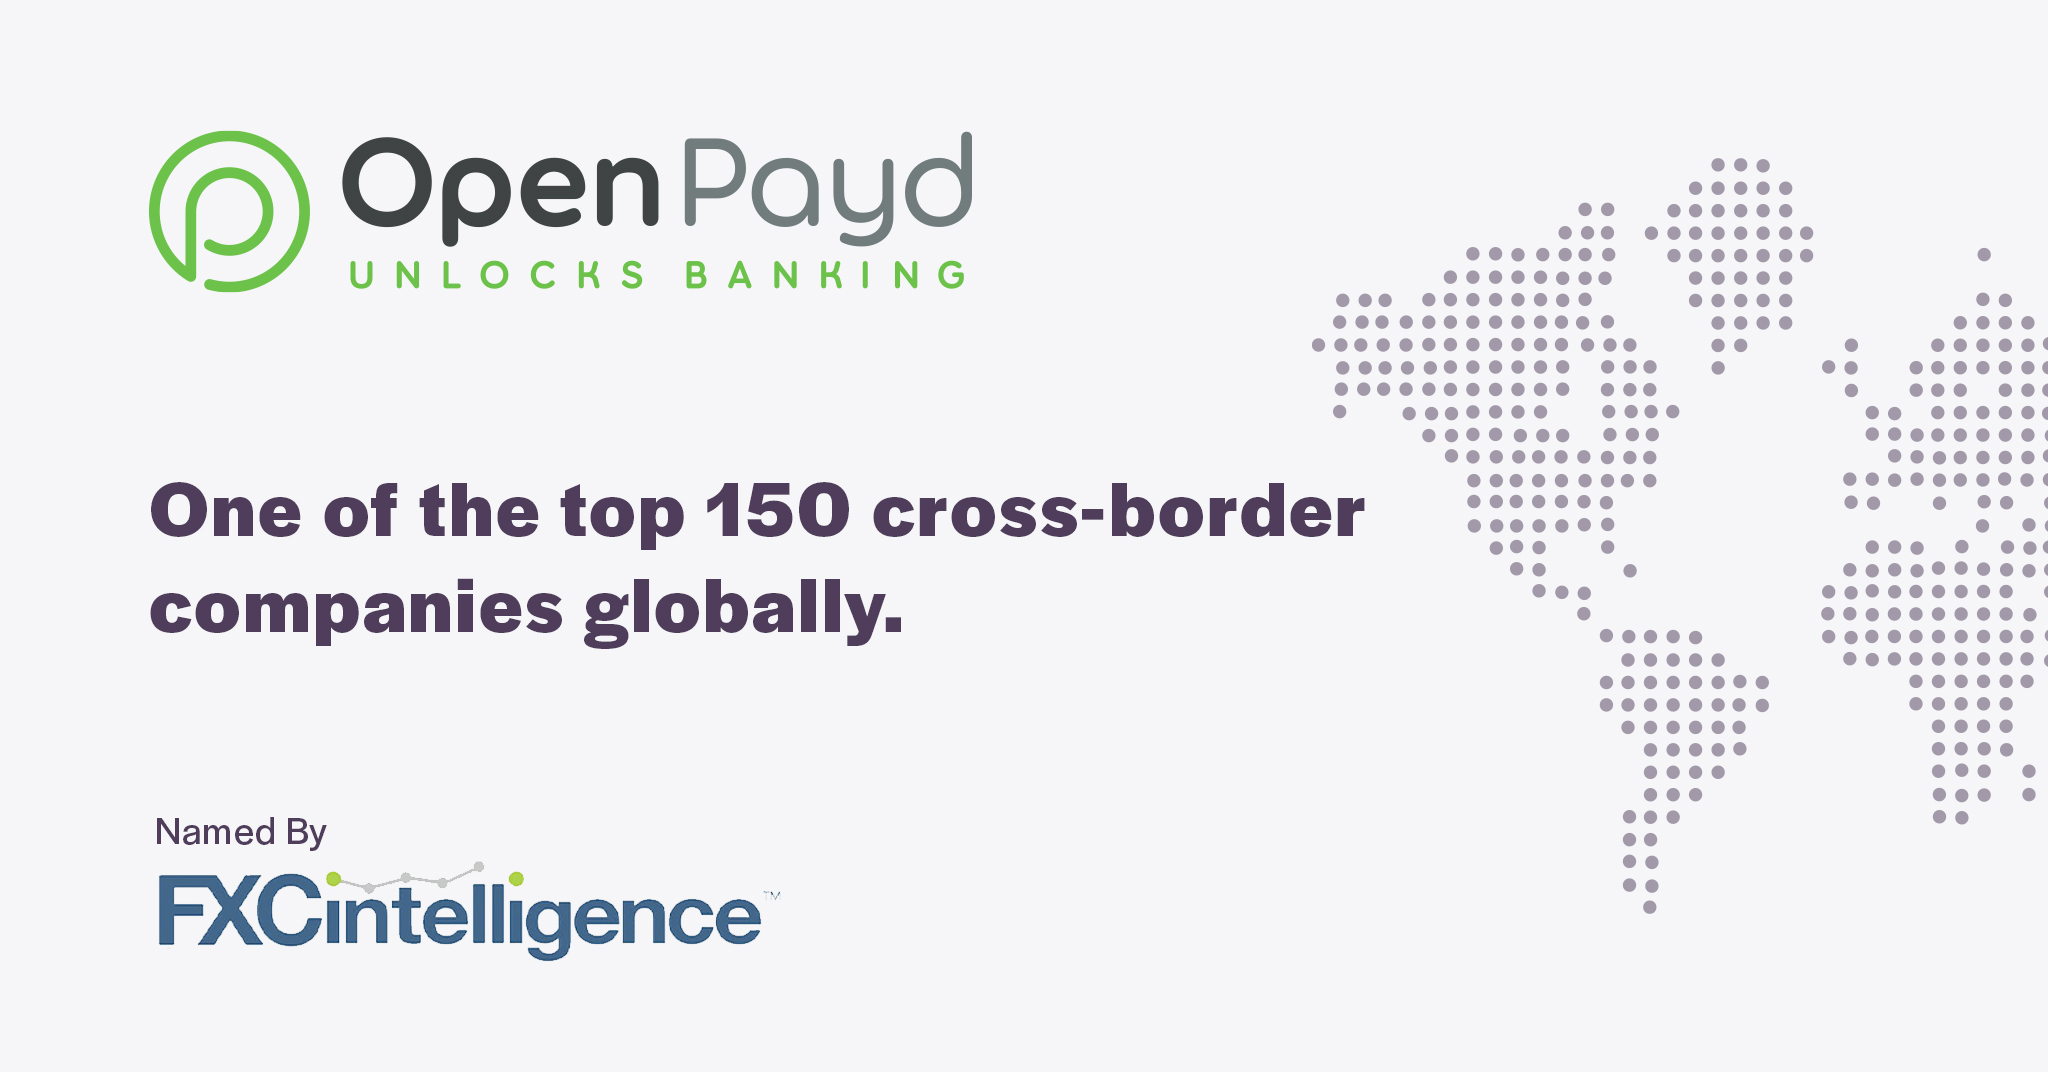 OpenPayd named in 150 top cross-border companies